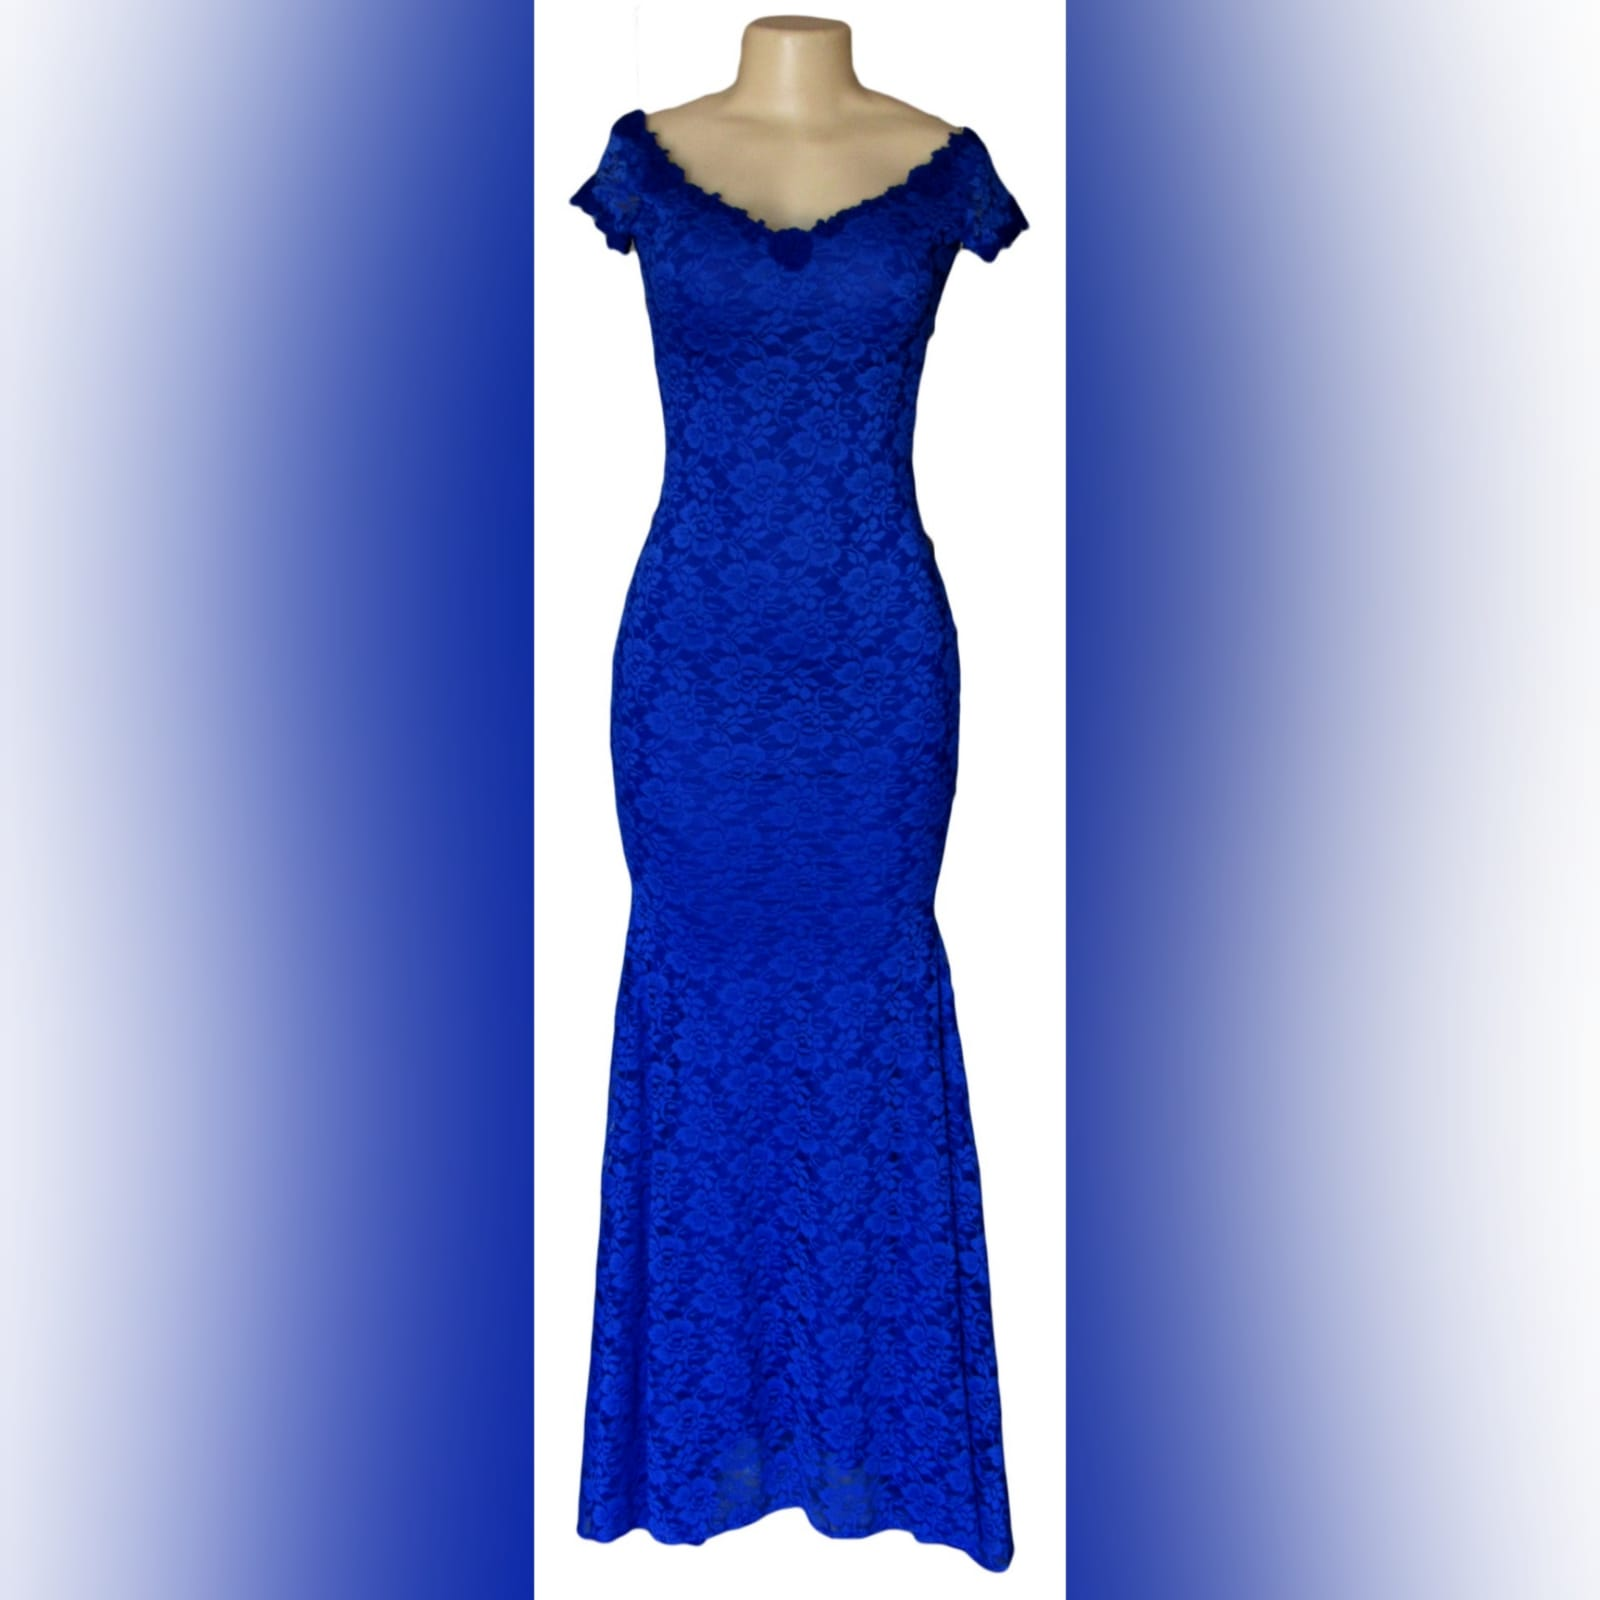 Royal blue fully lace prom dress 5 royal blue fully lace prom dress. An elegant simple design fitted till the hip with a slight flare. An off-shoulder neckline and cap sleeves detailed with guipure lace.